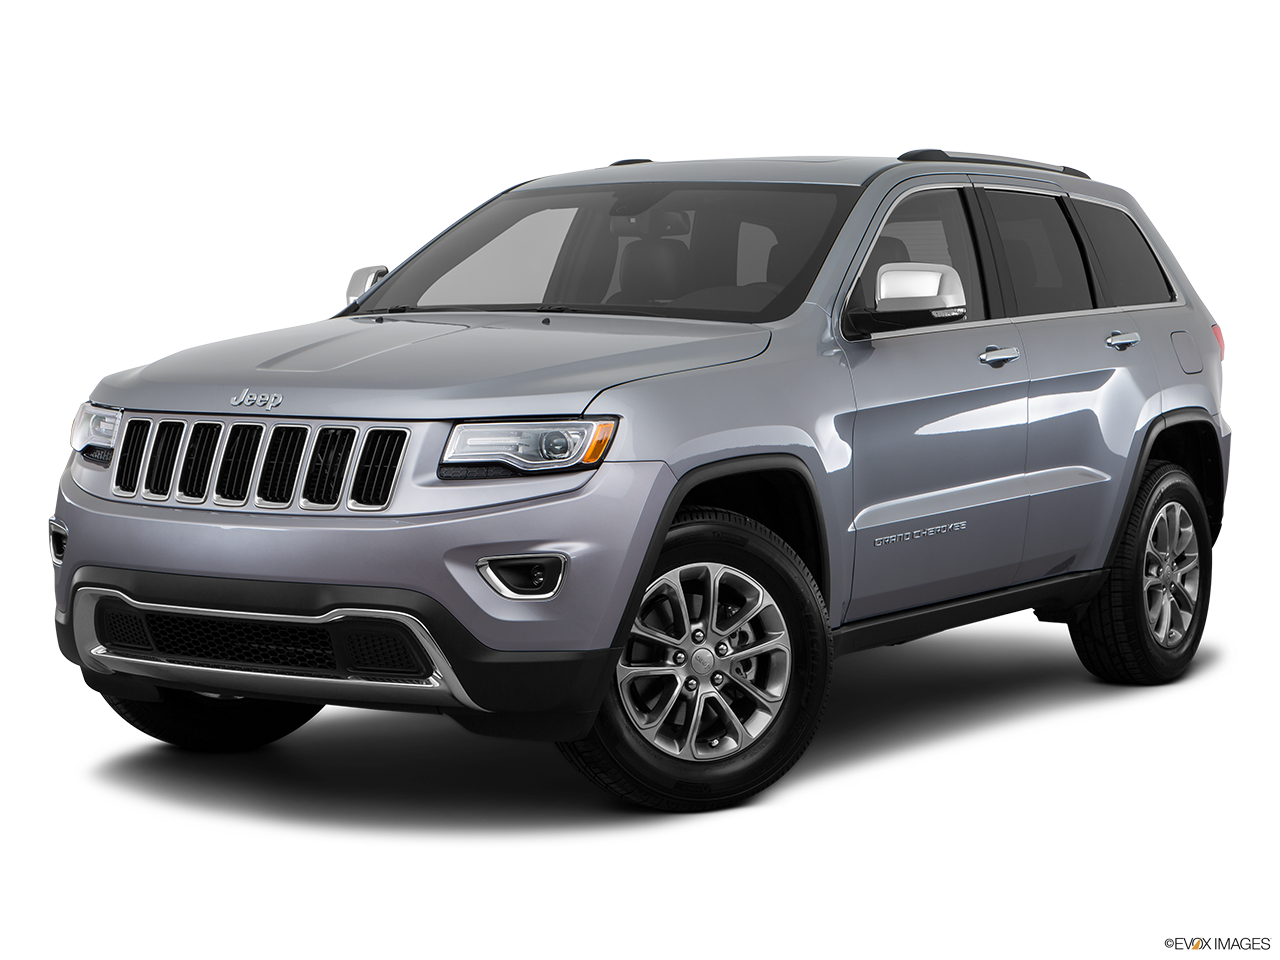 2016 jeep png. Grand cherokee dealer